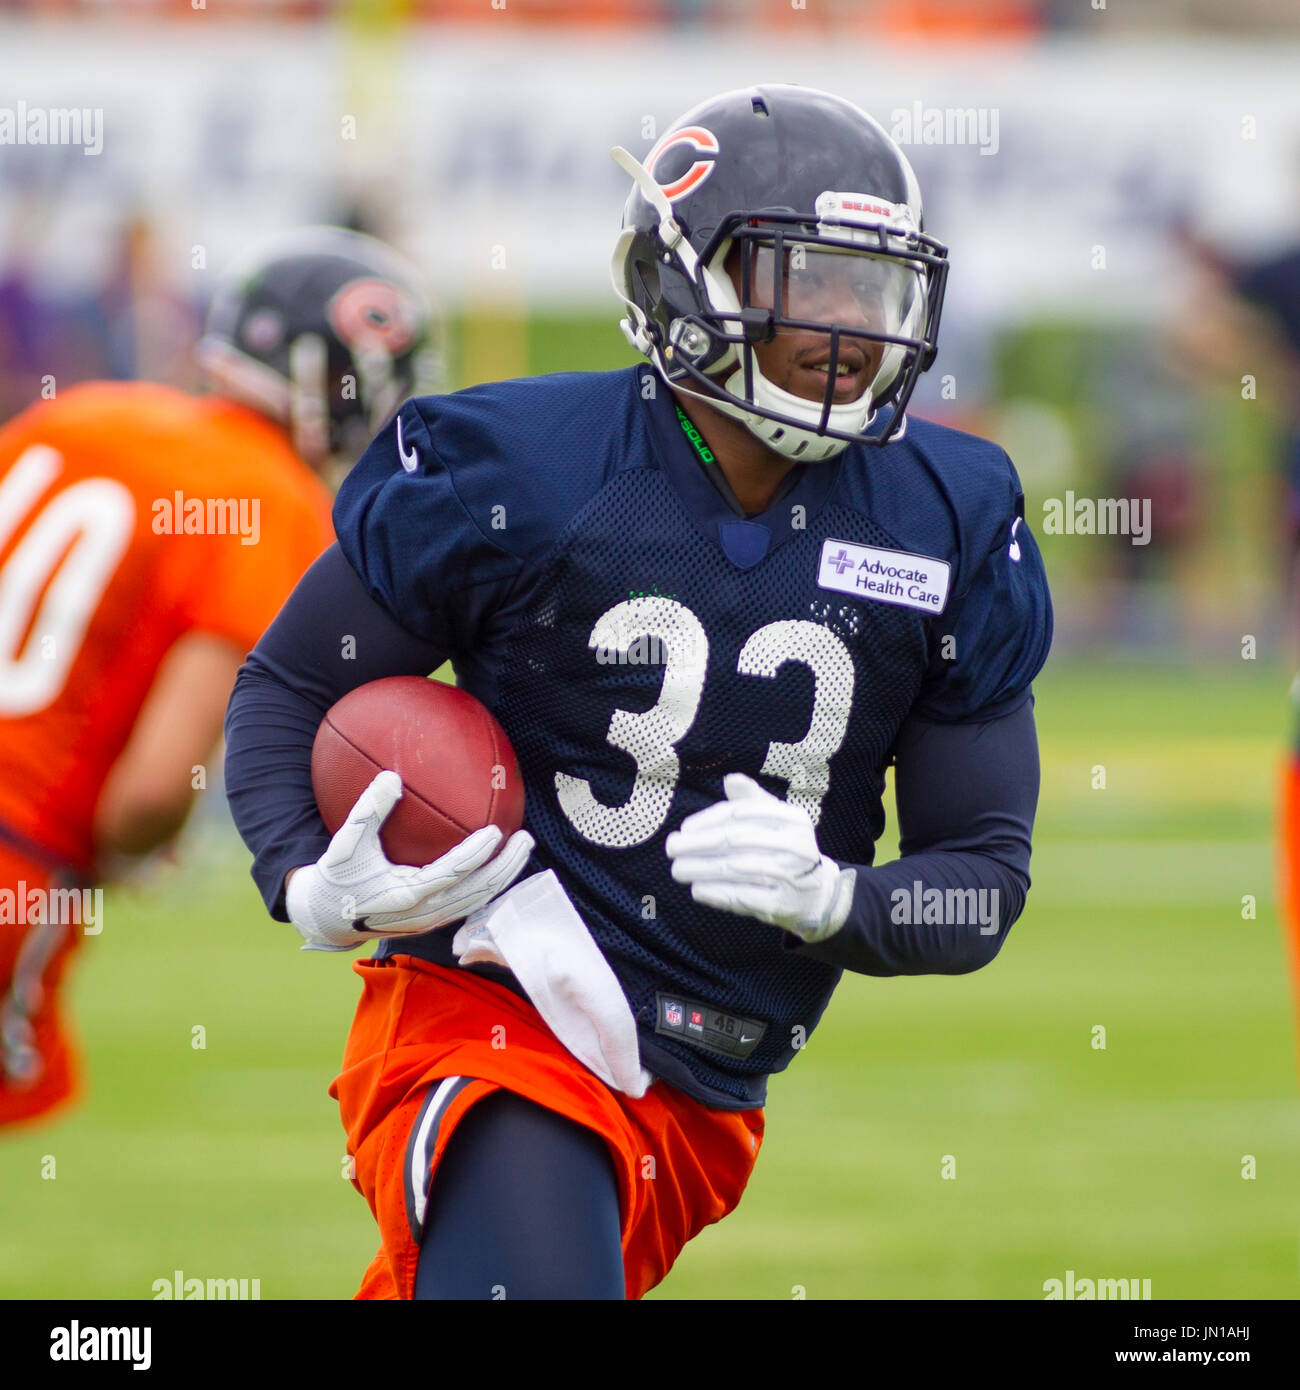 66fa4d5b0 Chicago Bears  33 Jeremy Langford in action during training camp on the  campus of Olivet Nazarene University